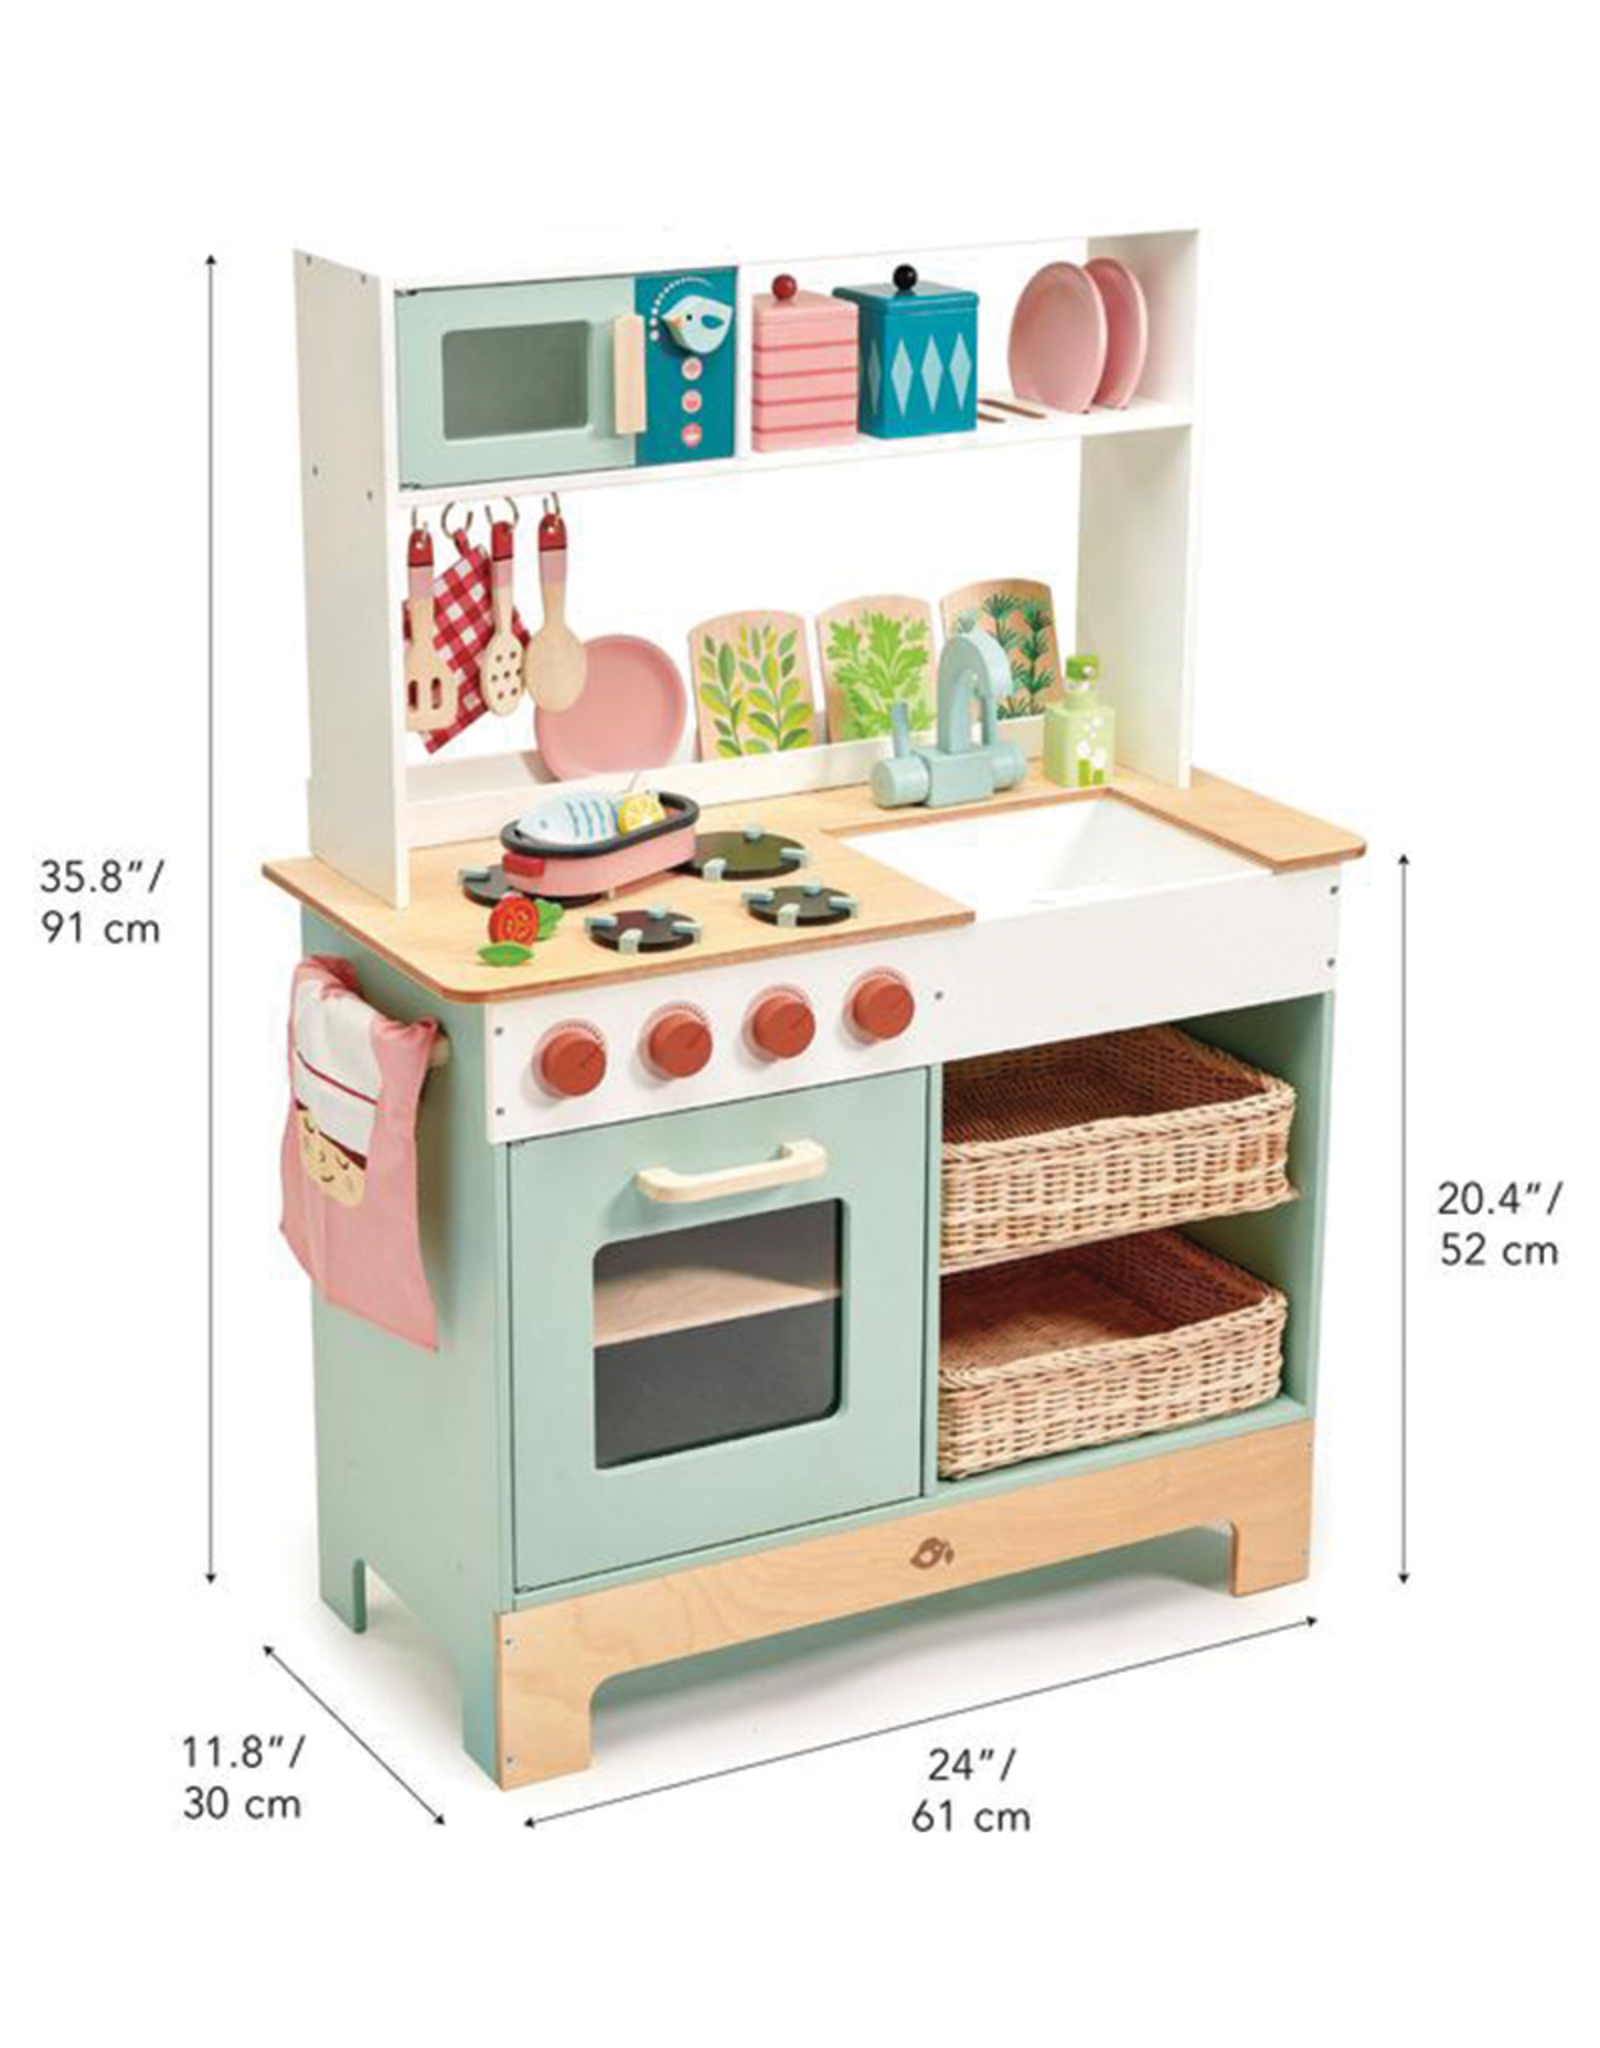 Tender Leaf Mini Chef Kitchen Range